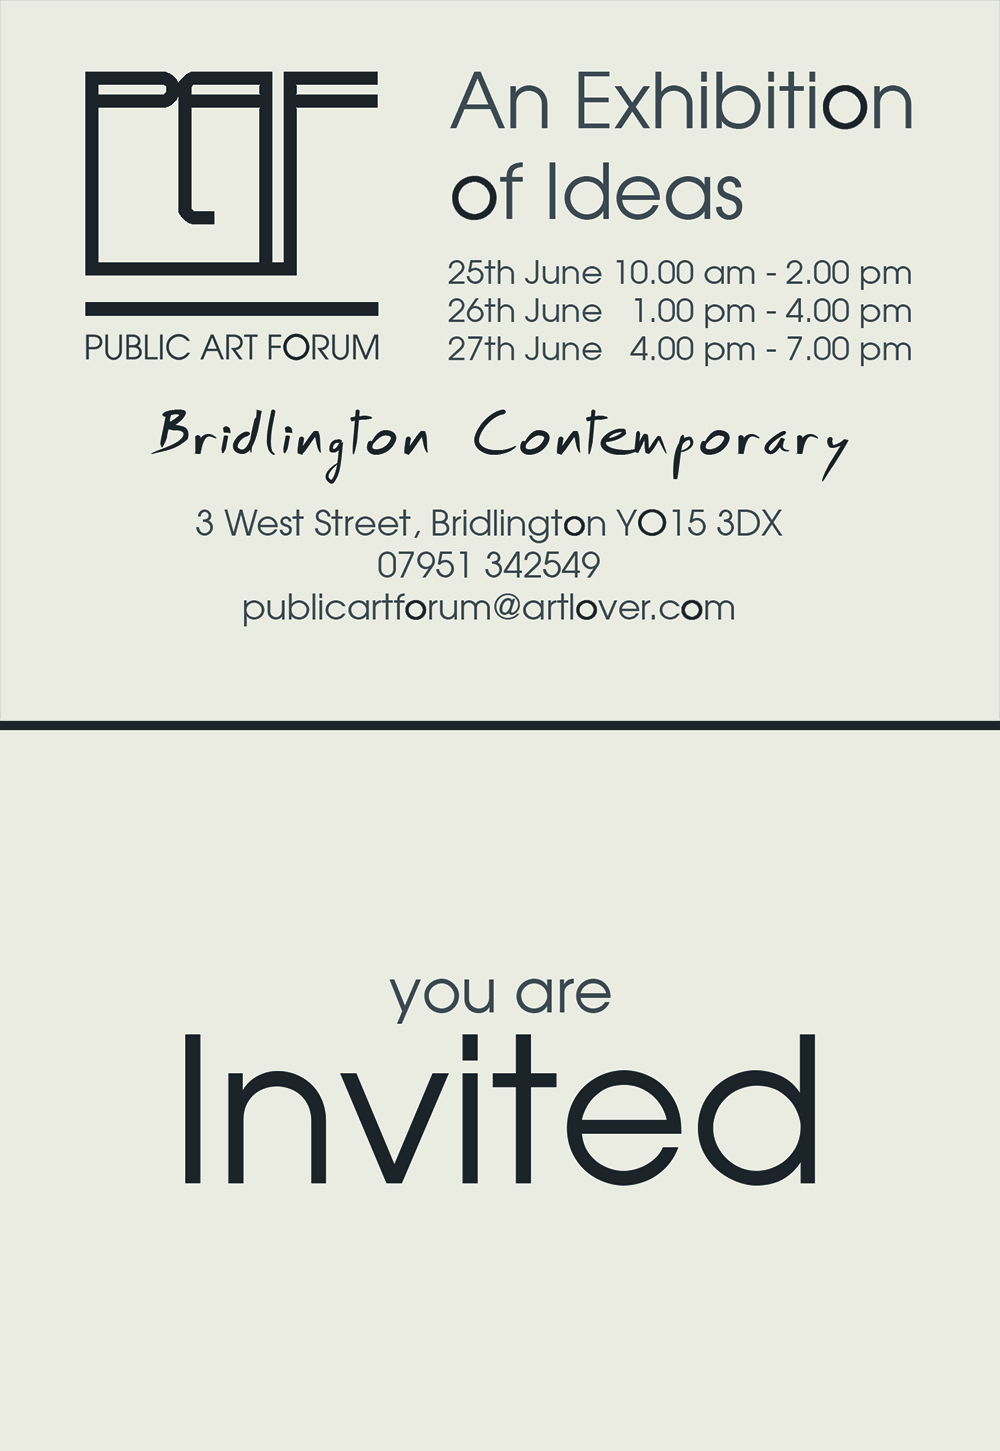 An invitation to an exhibition of ideas for the on going regeneration of Bridlington Town Centre, East Yorkshire, YO15 3DX